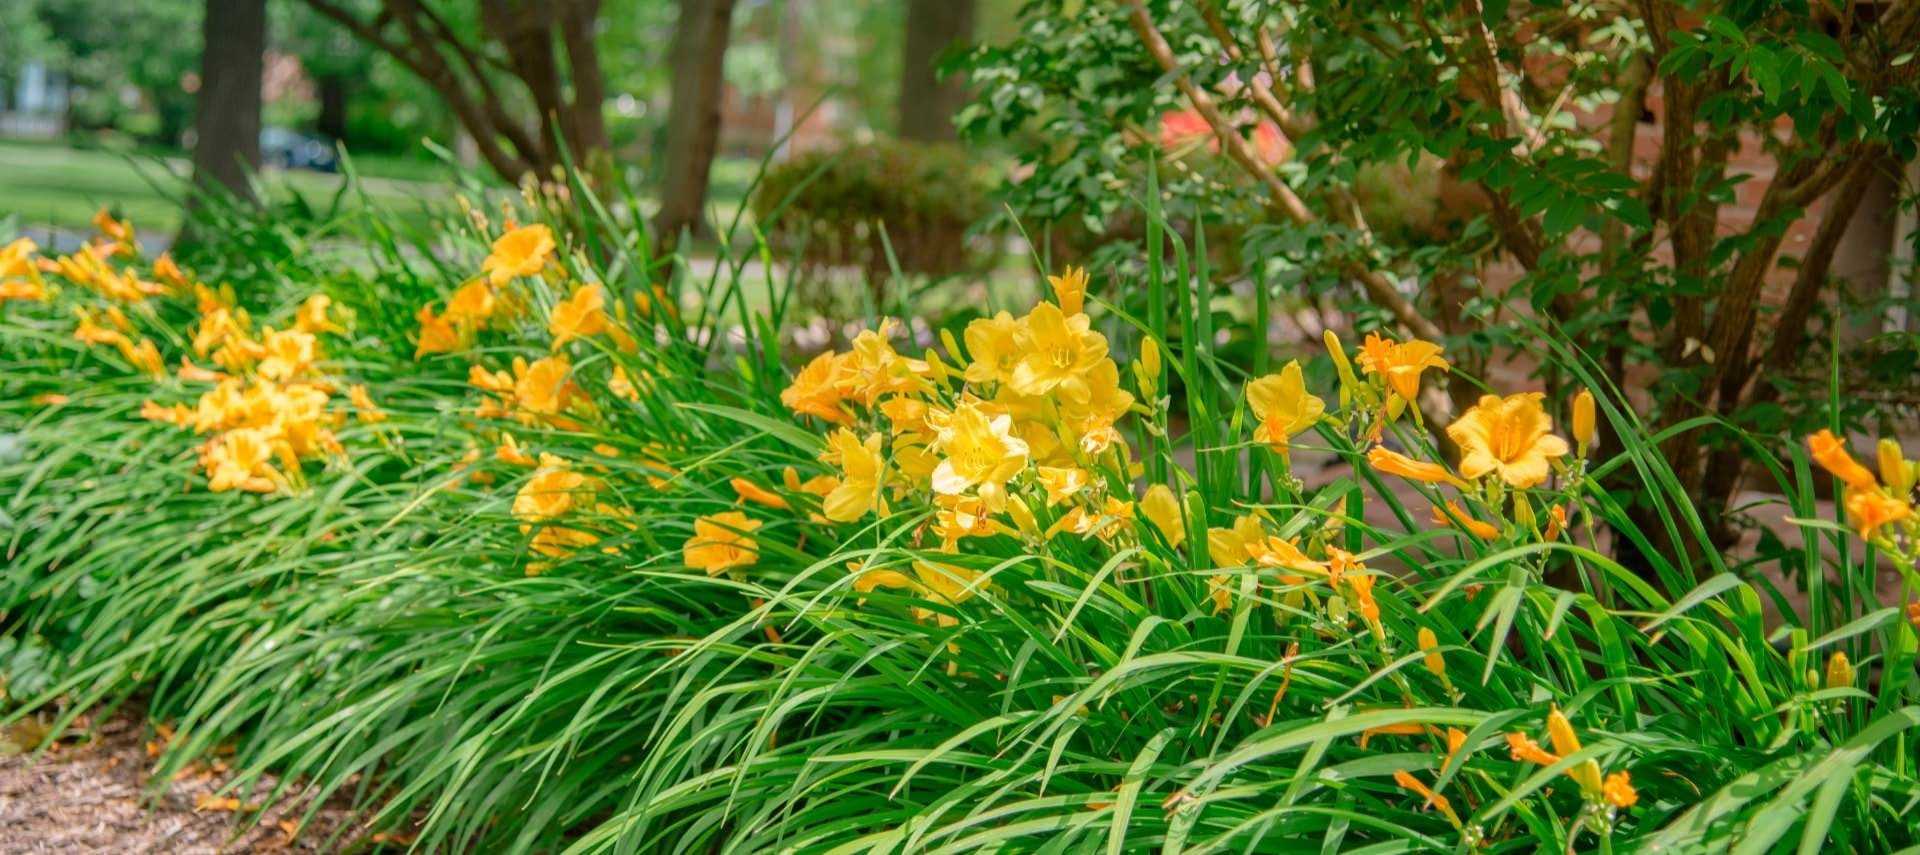 Close up view of yellow daffodils and greenery